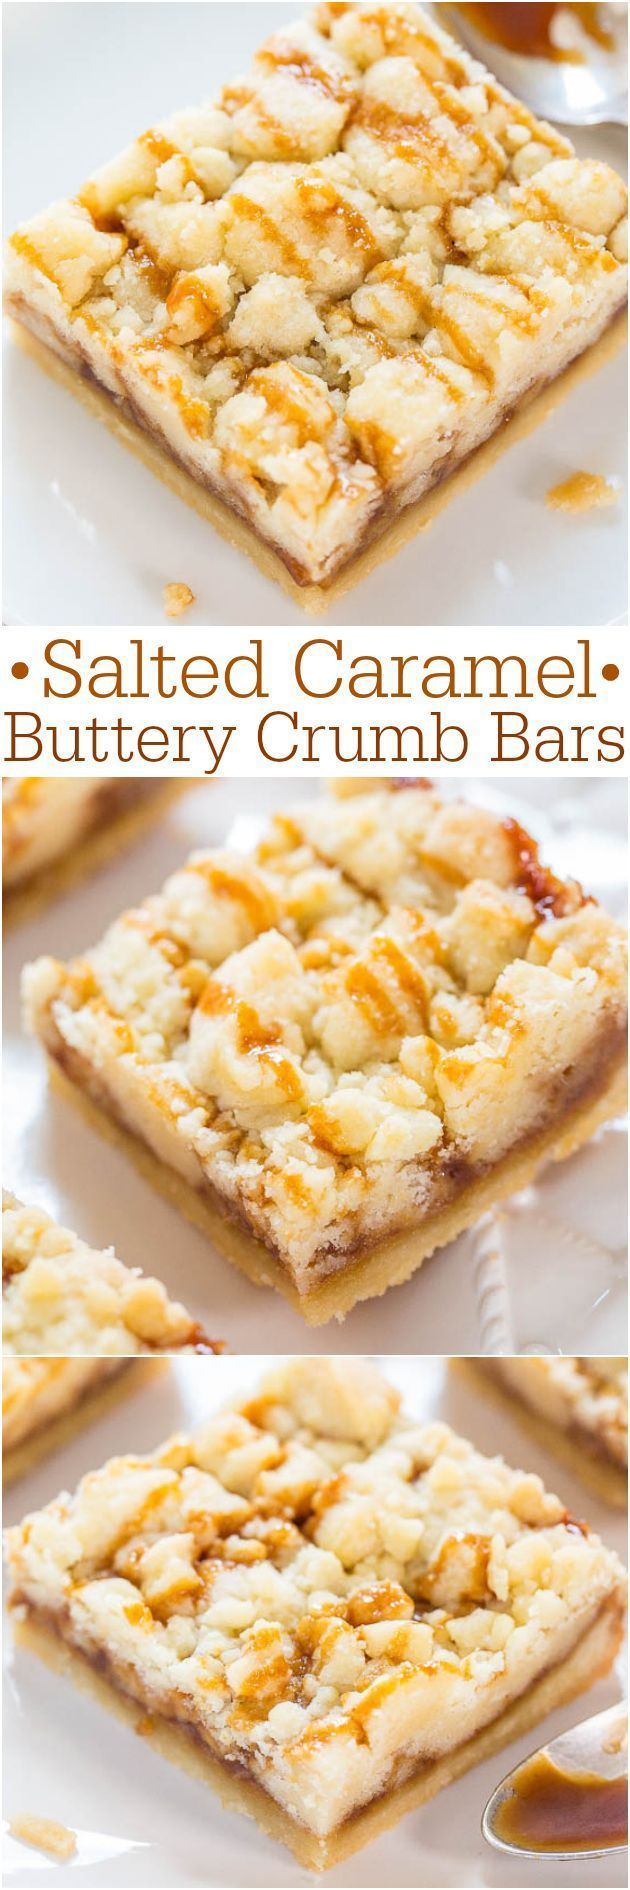 Salted Caramel Buttery Crumb Bars - Easy. soft. buttery bars that just melt in your mouth! The salted caramel makes them so irresistible!!!